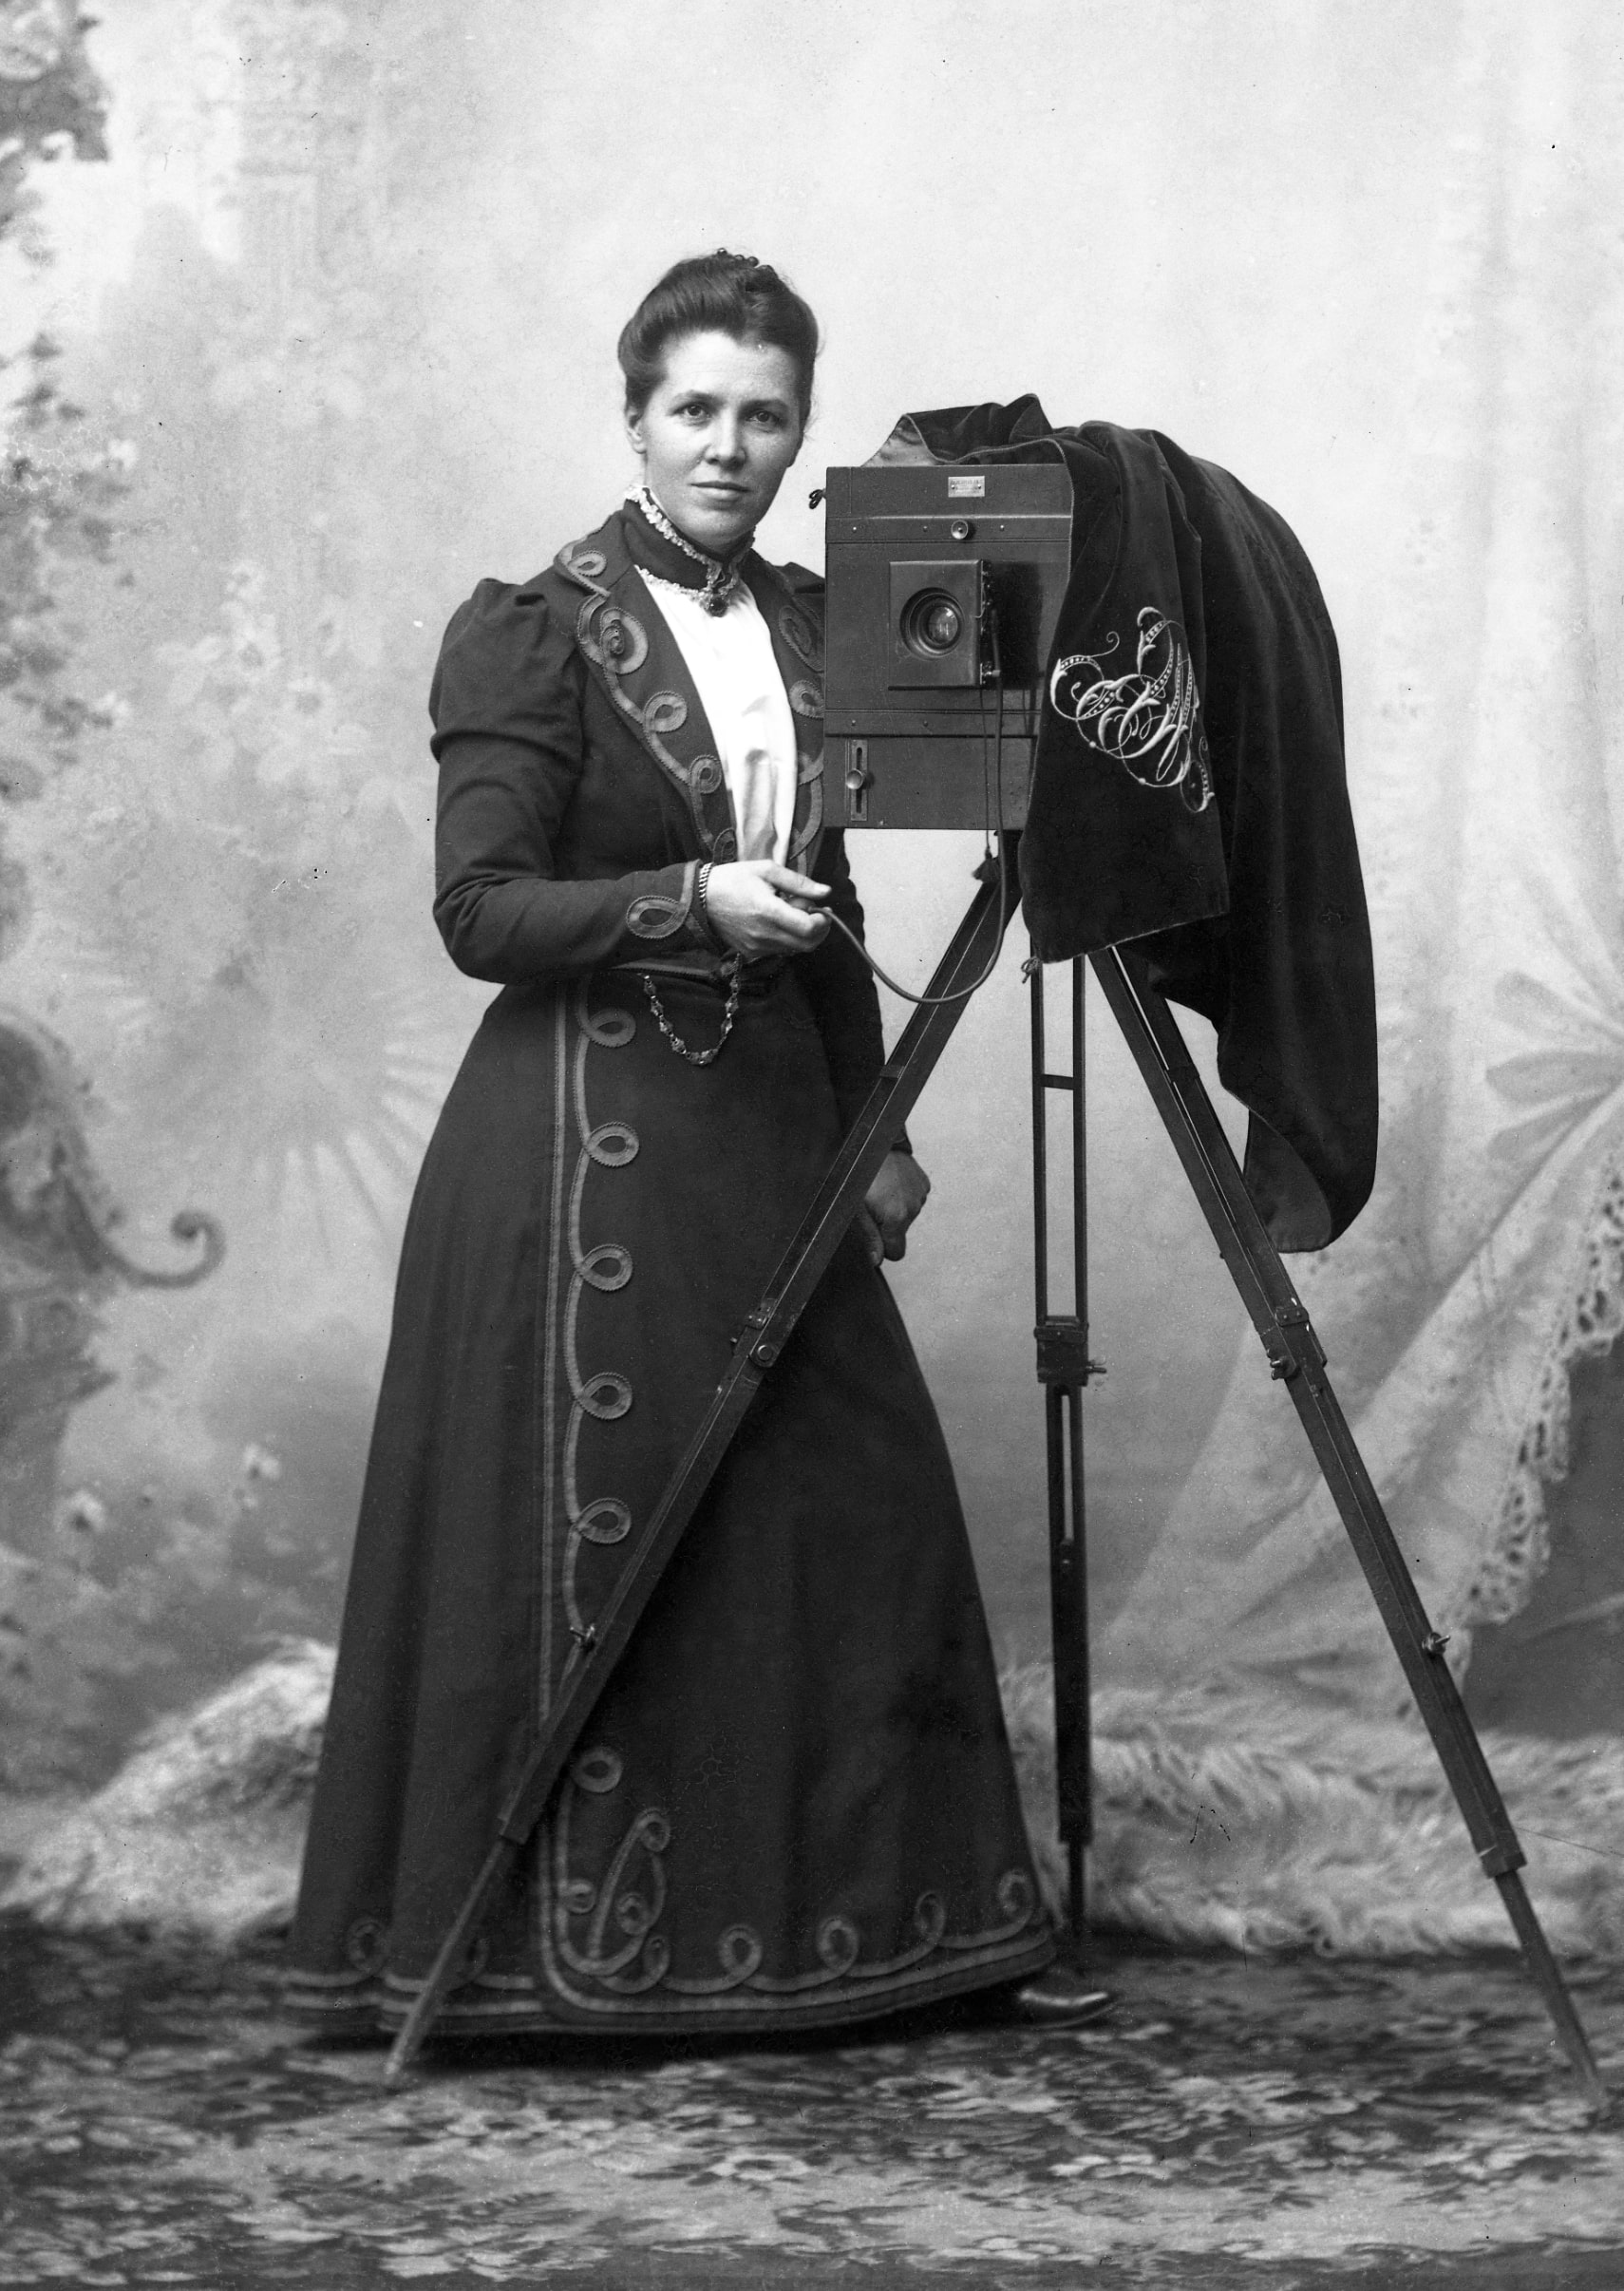 Mathilda Ranch with her camera. Self portrait, 1901 (Hallands kulturhistoriska museums arkiv, MR2:712)